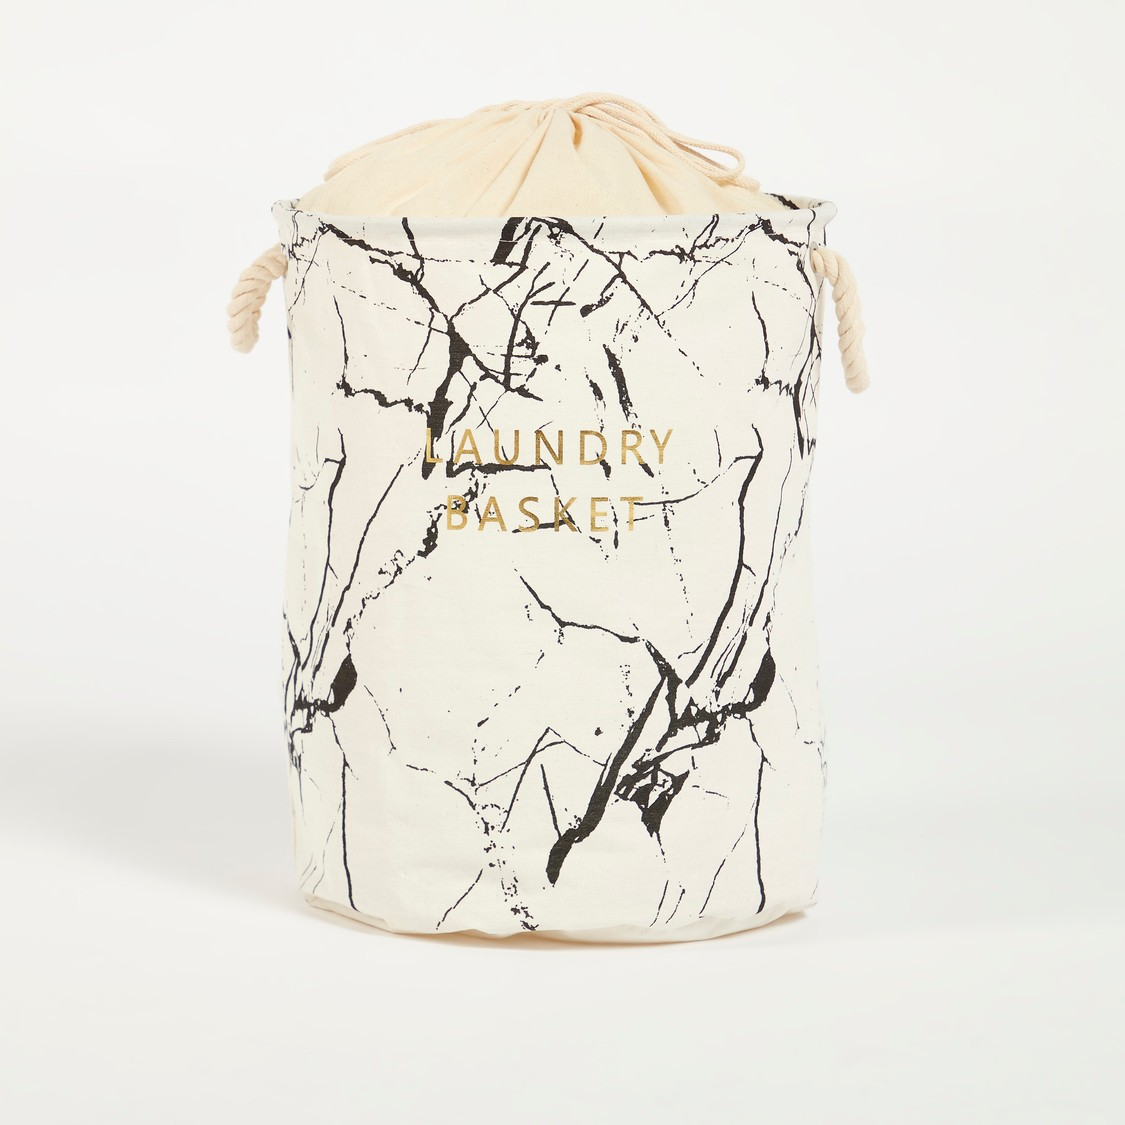 Printed Laundry Hamper with Handles and Drawstring Closure - 38x49 cms